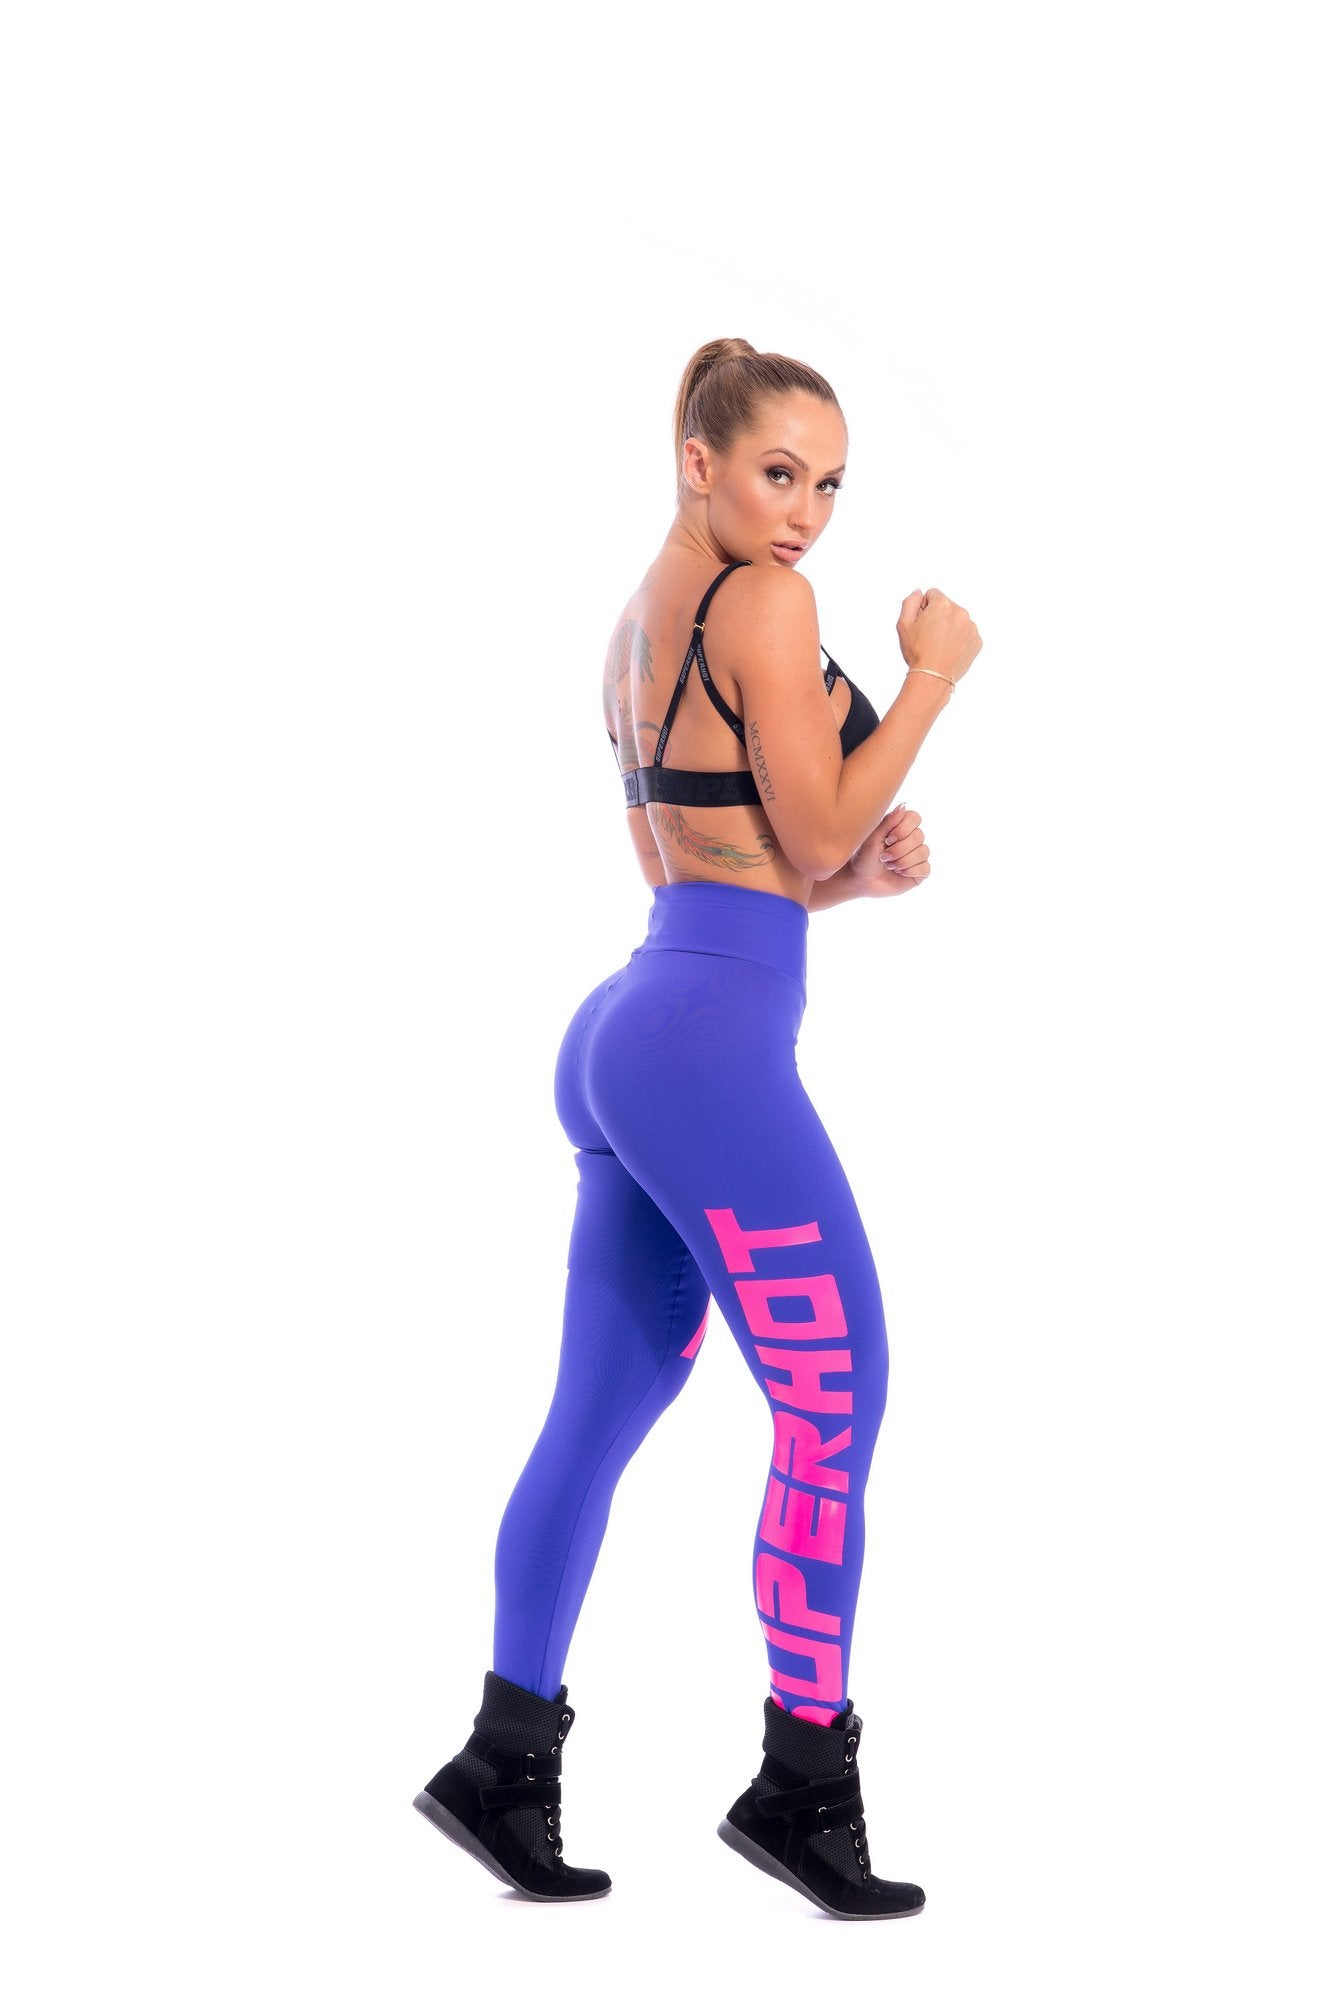 Make Your Mark Legging - Blue & Pink - SUPERHOT - FitZee